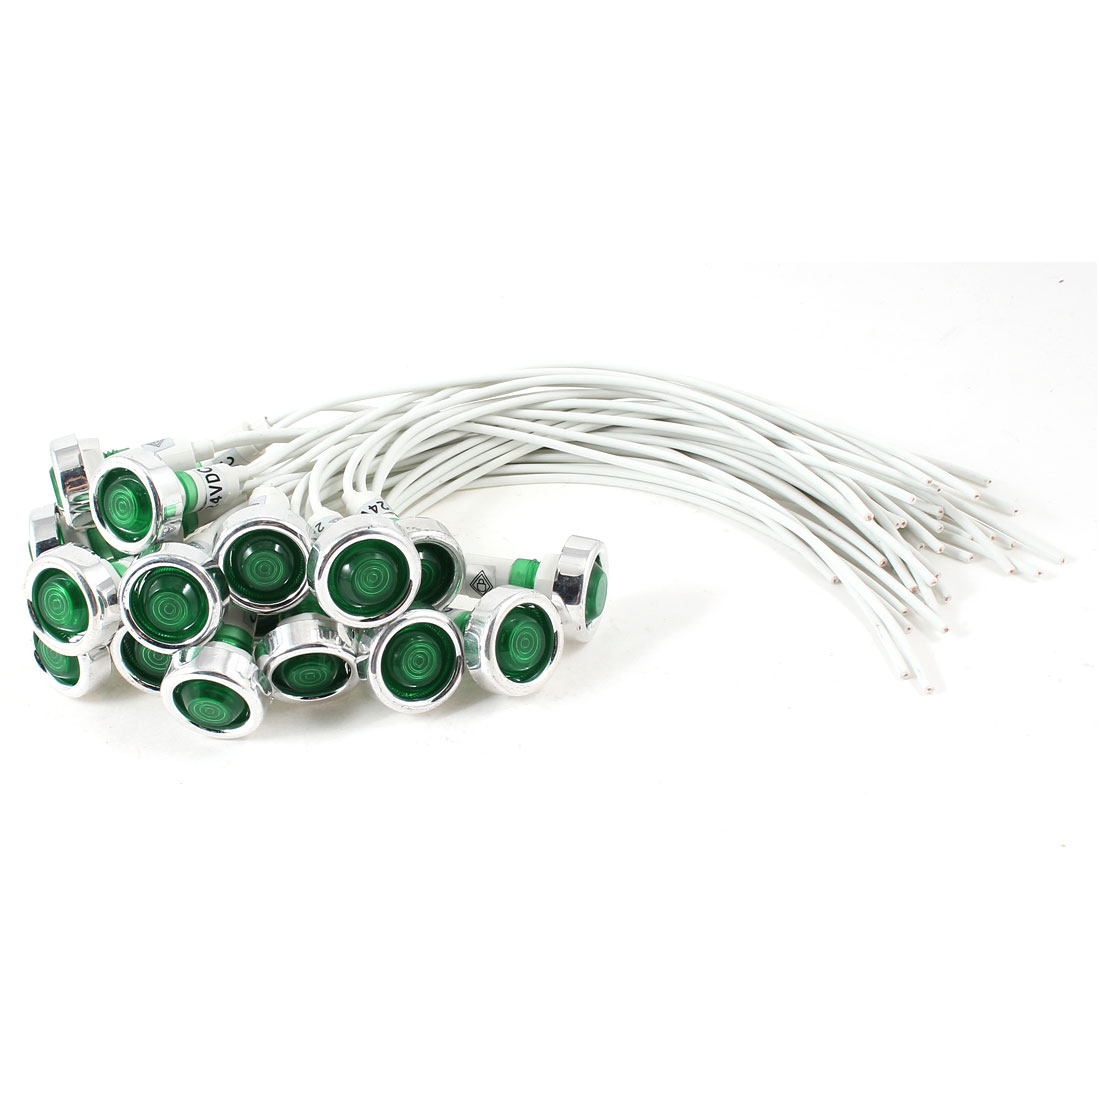 20 Pcs White Cable Green Indicator Pilot Light Lamp DC 24V